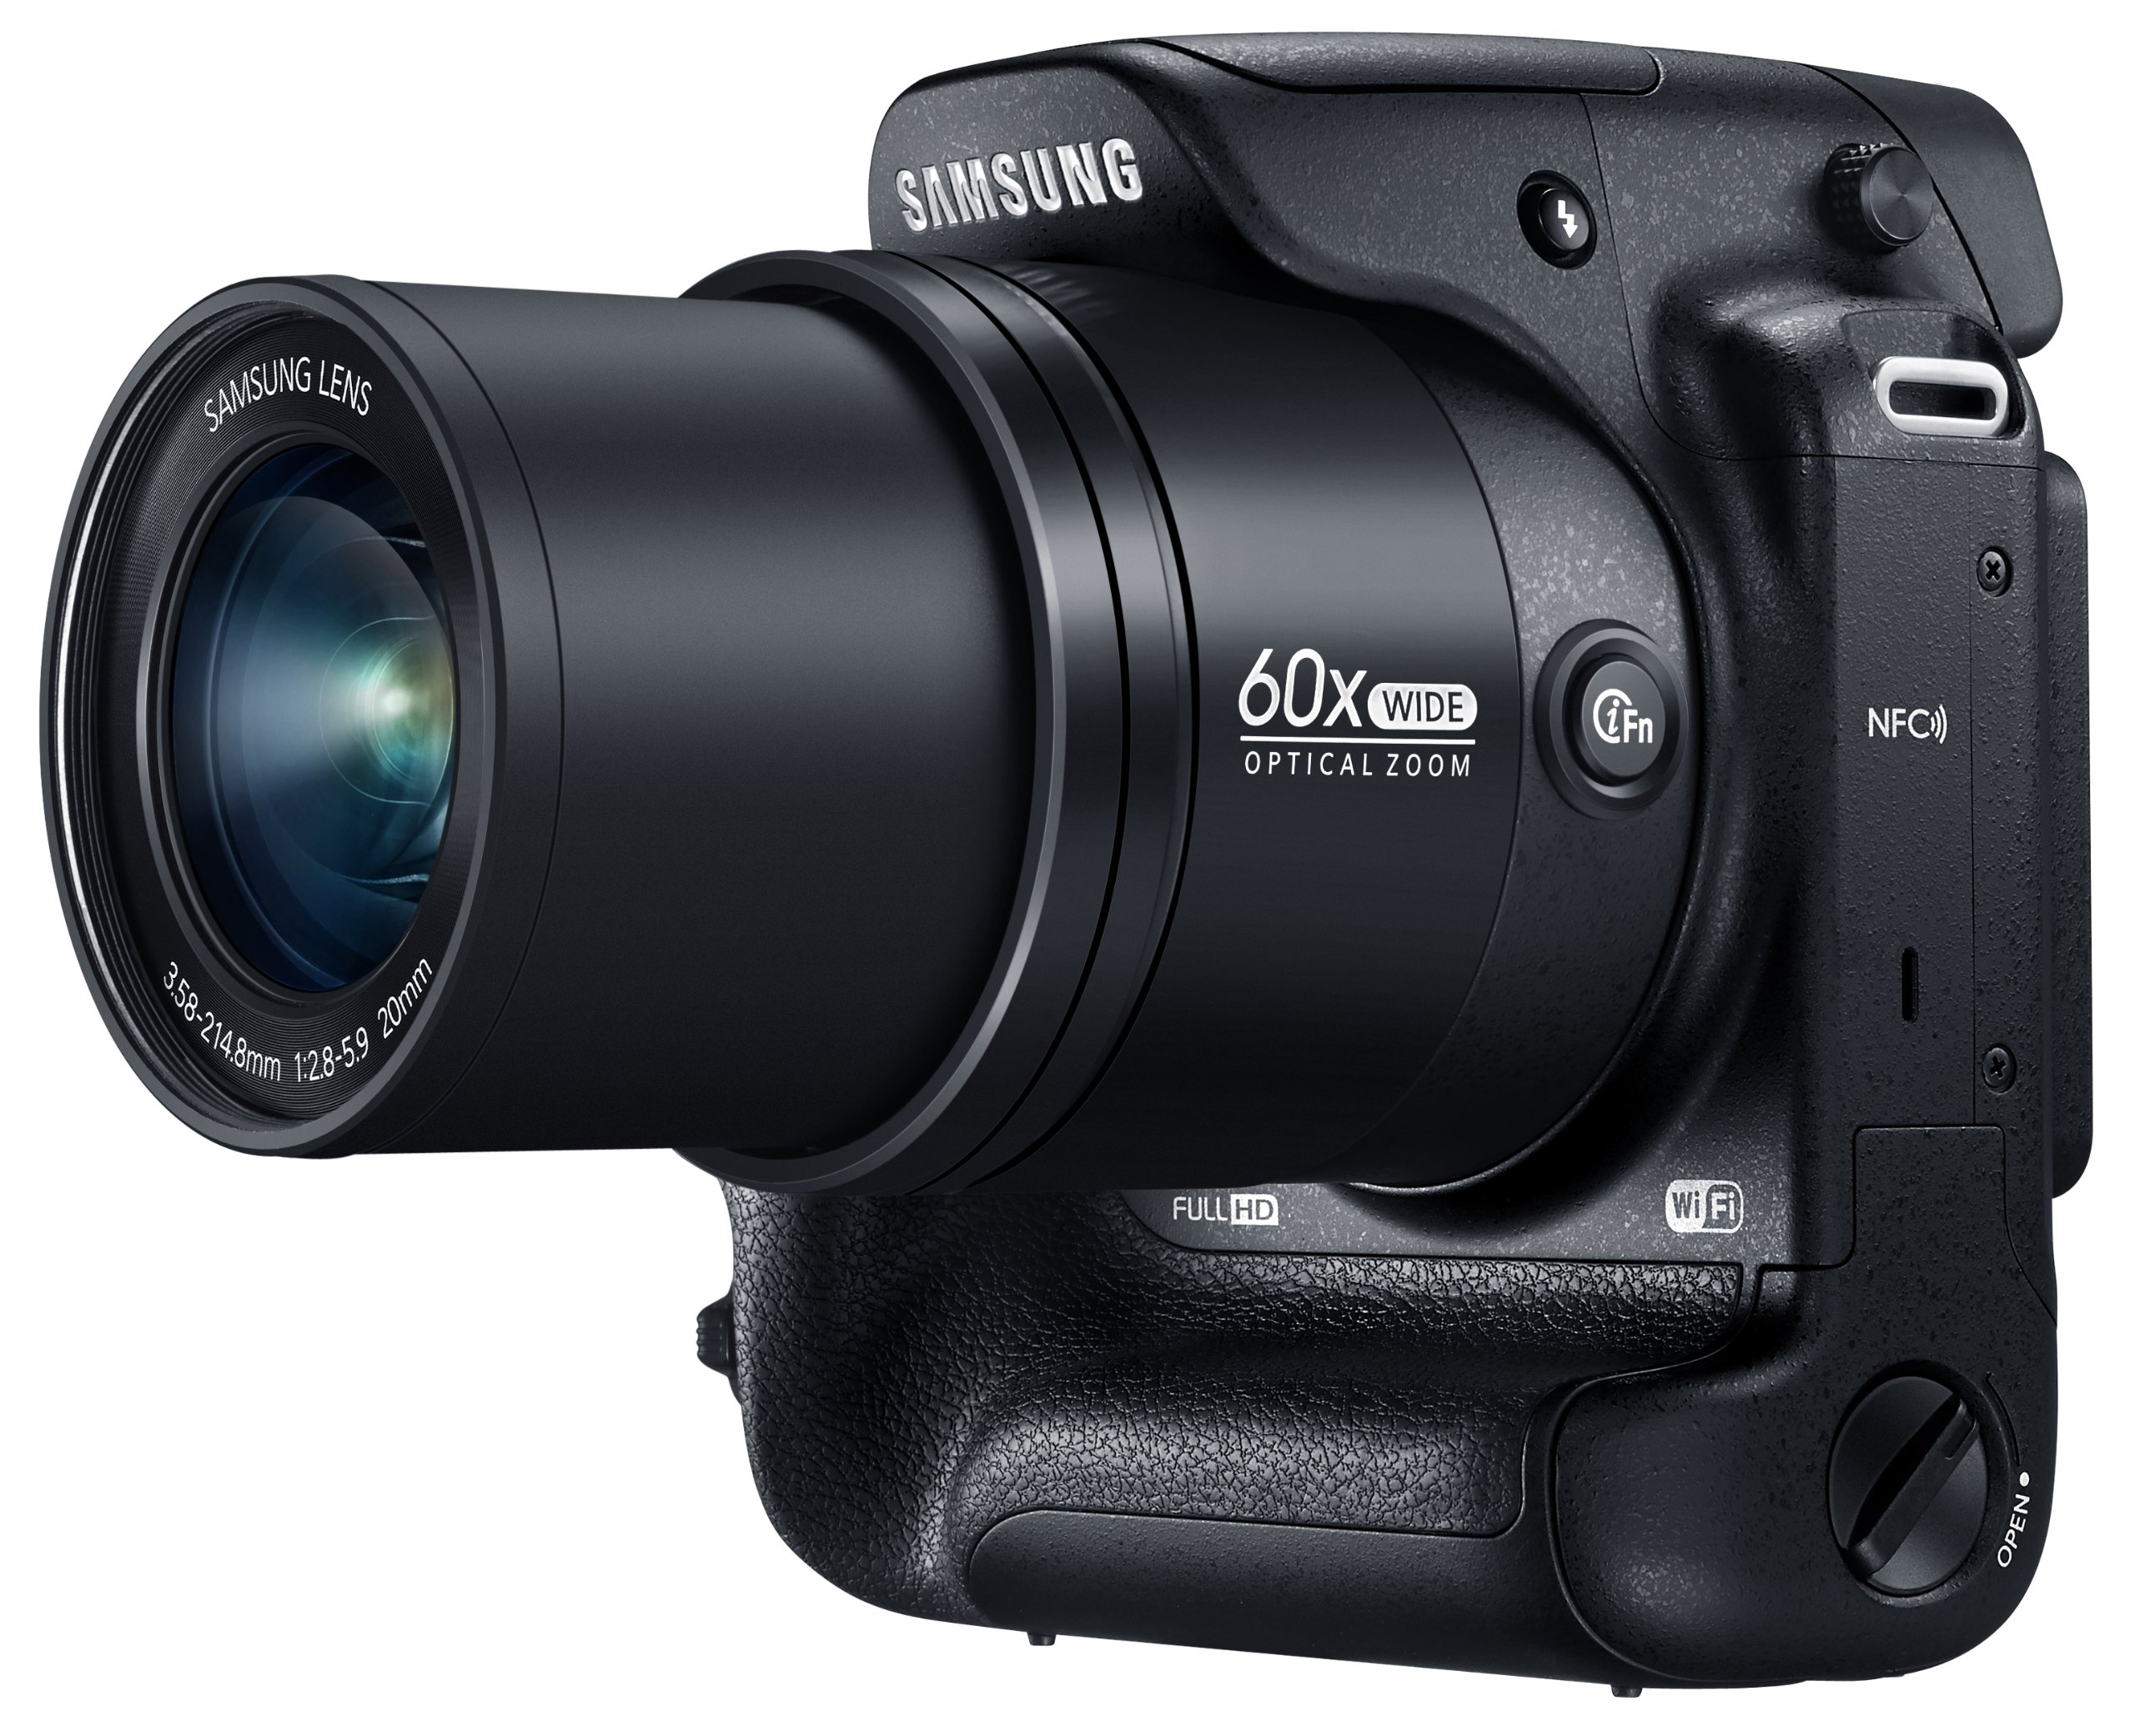 Samsung WB2200F 16.3MP CMOS Smart WiFi & NFC Digital Camera with 60x Optical  Zoom, 3.0'' LCD and 1080p HD Video (Black) by Samsung (Image #1)